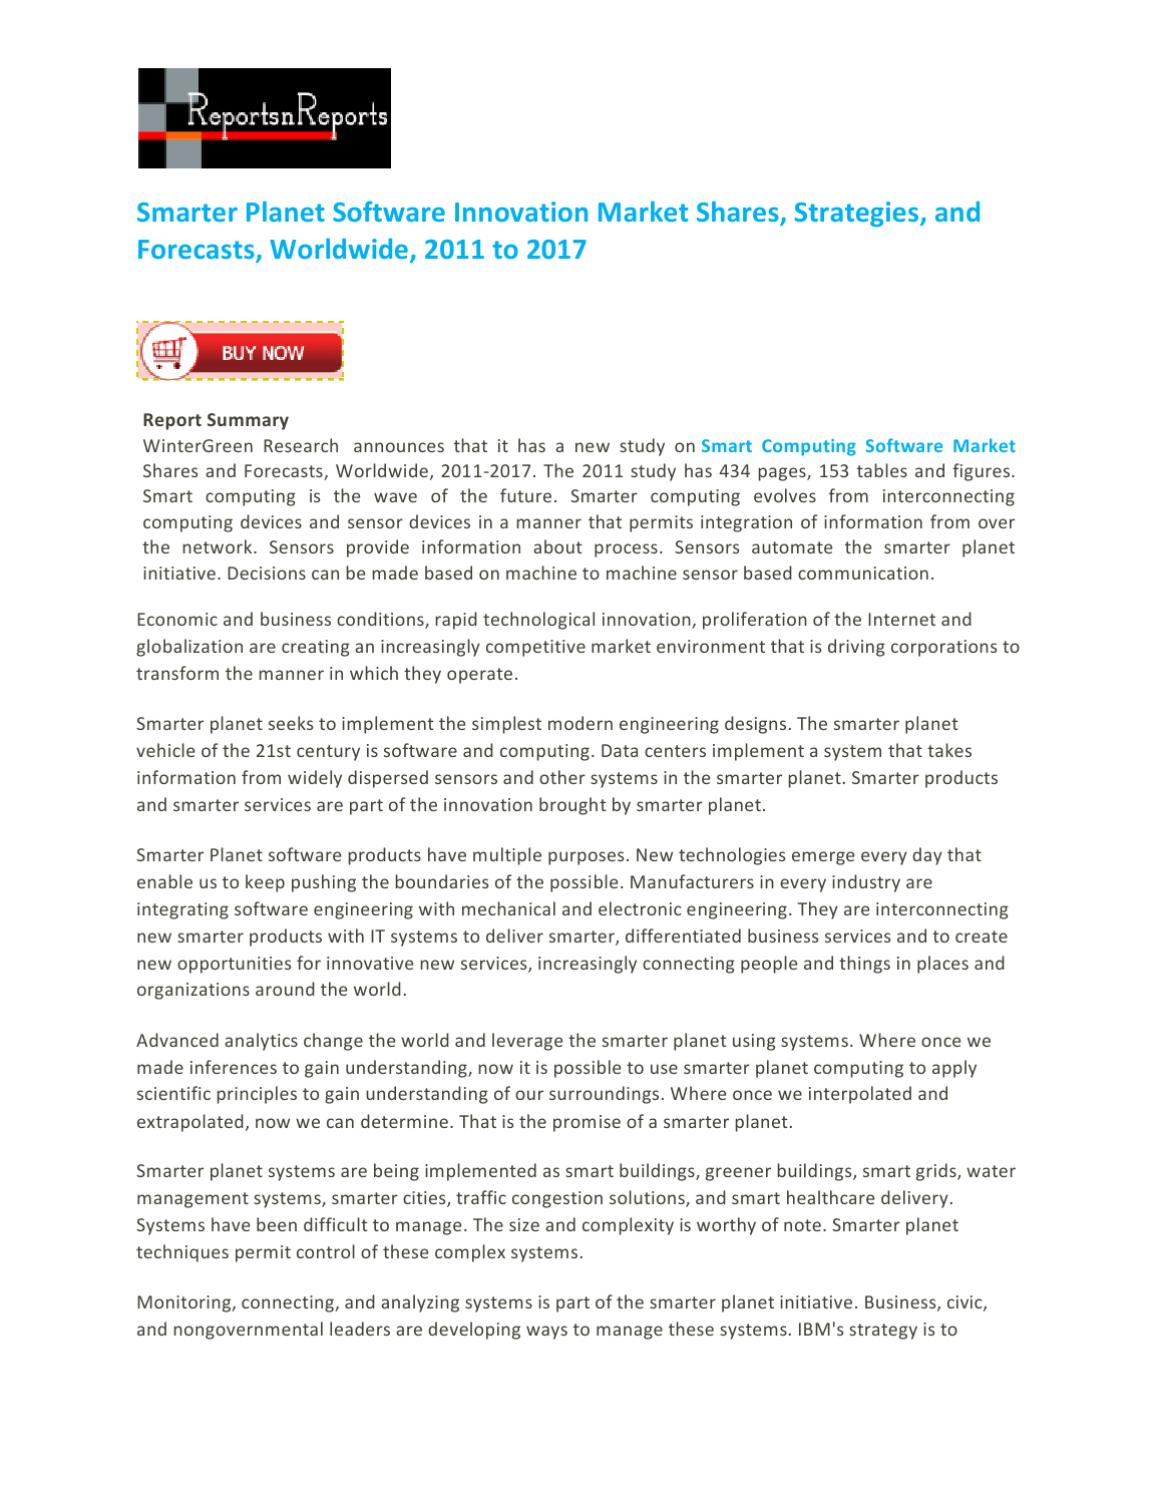 smarter planet software innovation market strategies New report added in researchmoz reports database smarter planet software innovation market strategies, shares and forecasts, worldwide, nanotechnology, 2011-2017 published by winter green research .